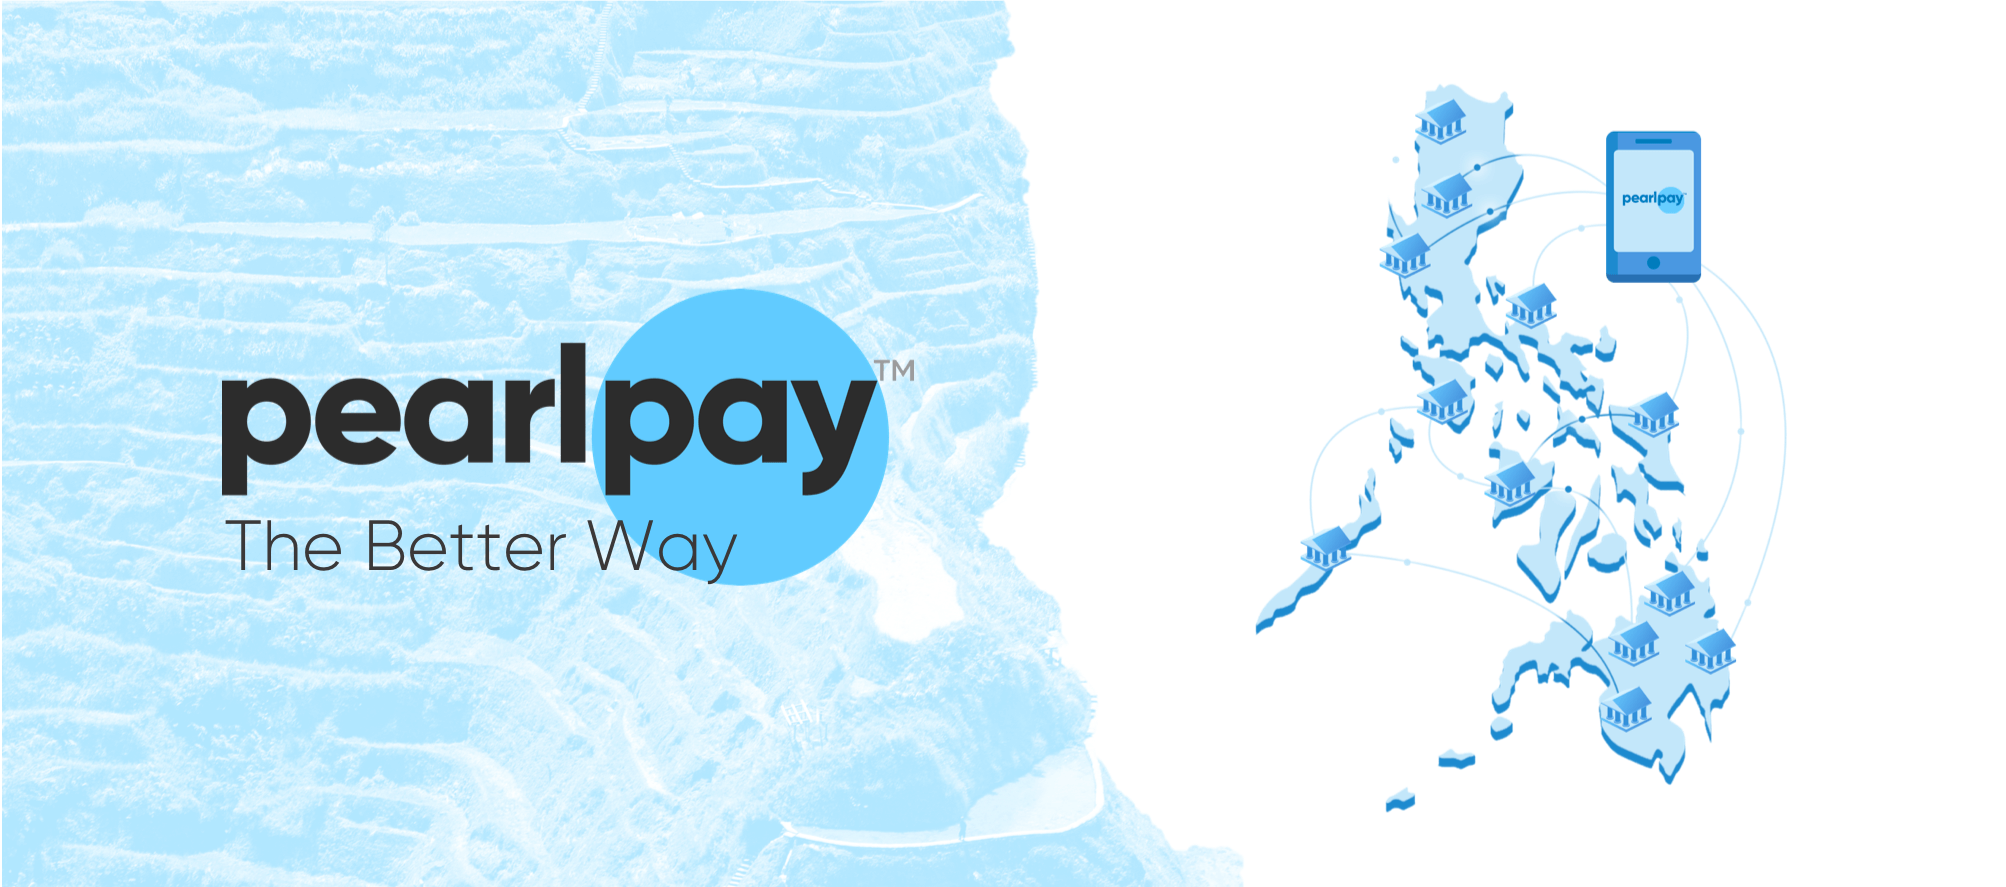 PearlPay Solution Digitizing the Rural banking system